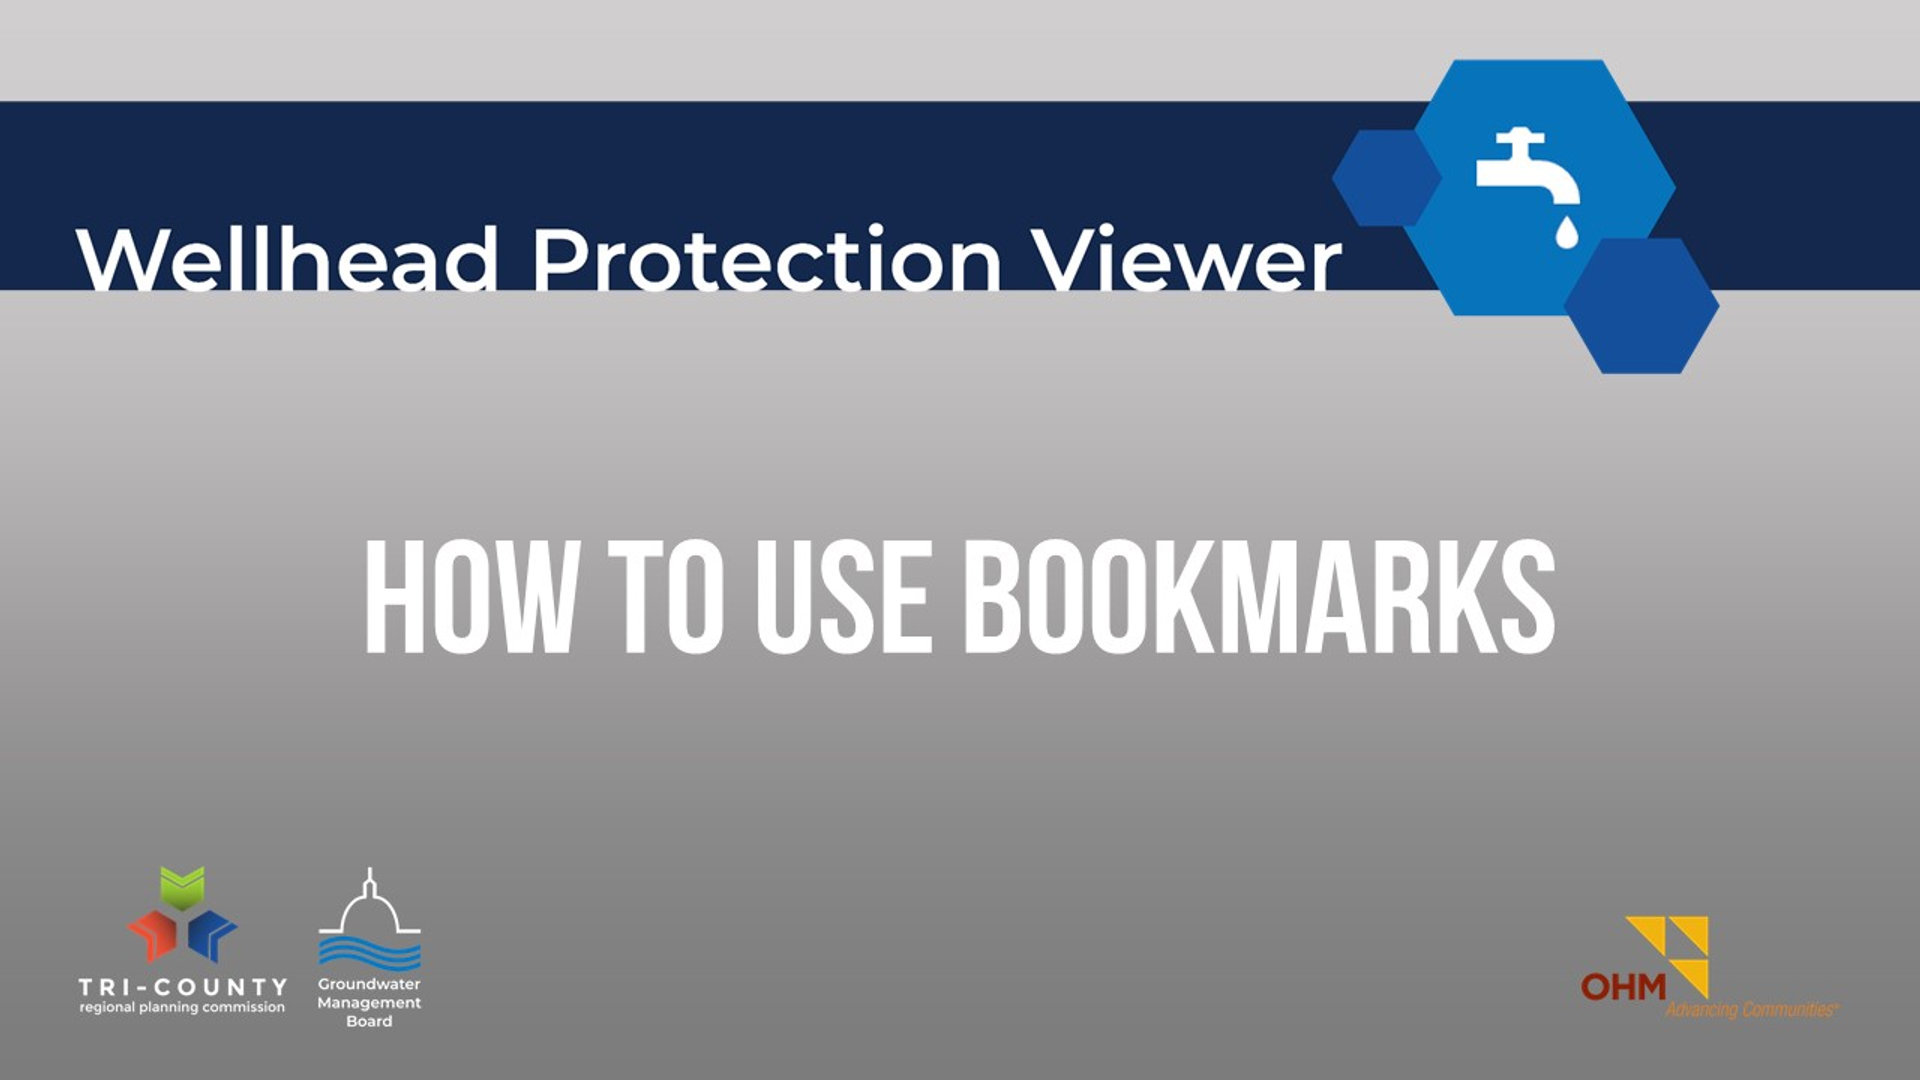 How to Use Bookmarks